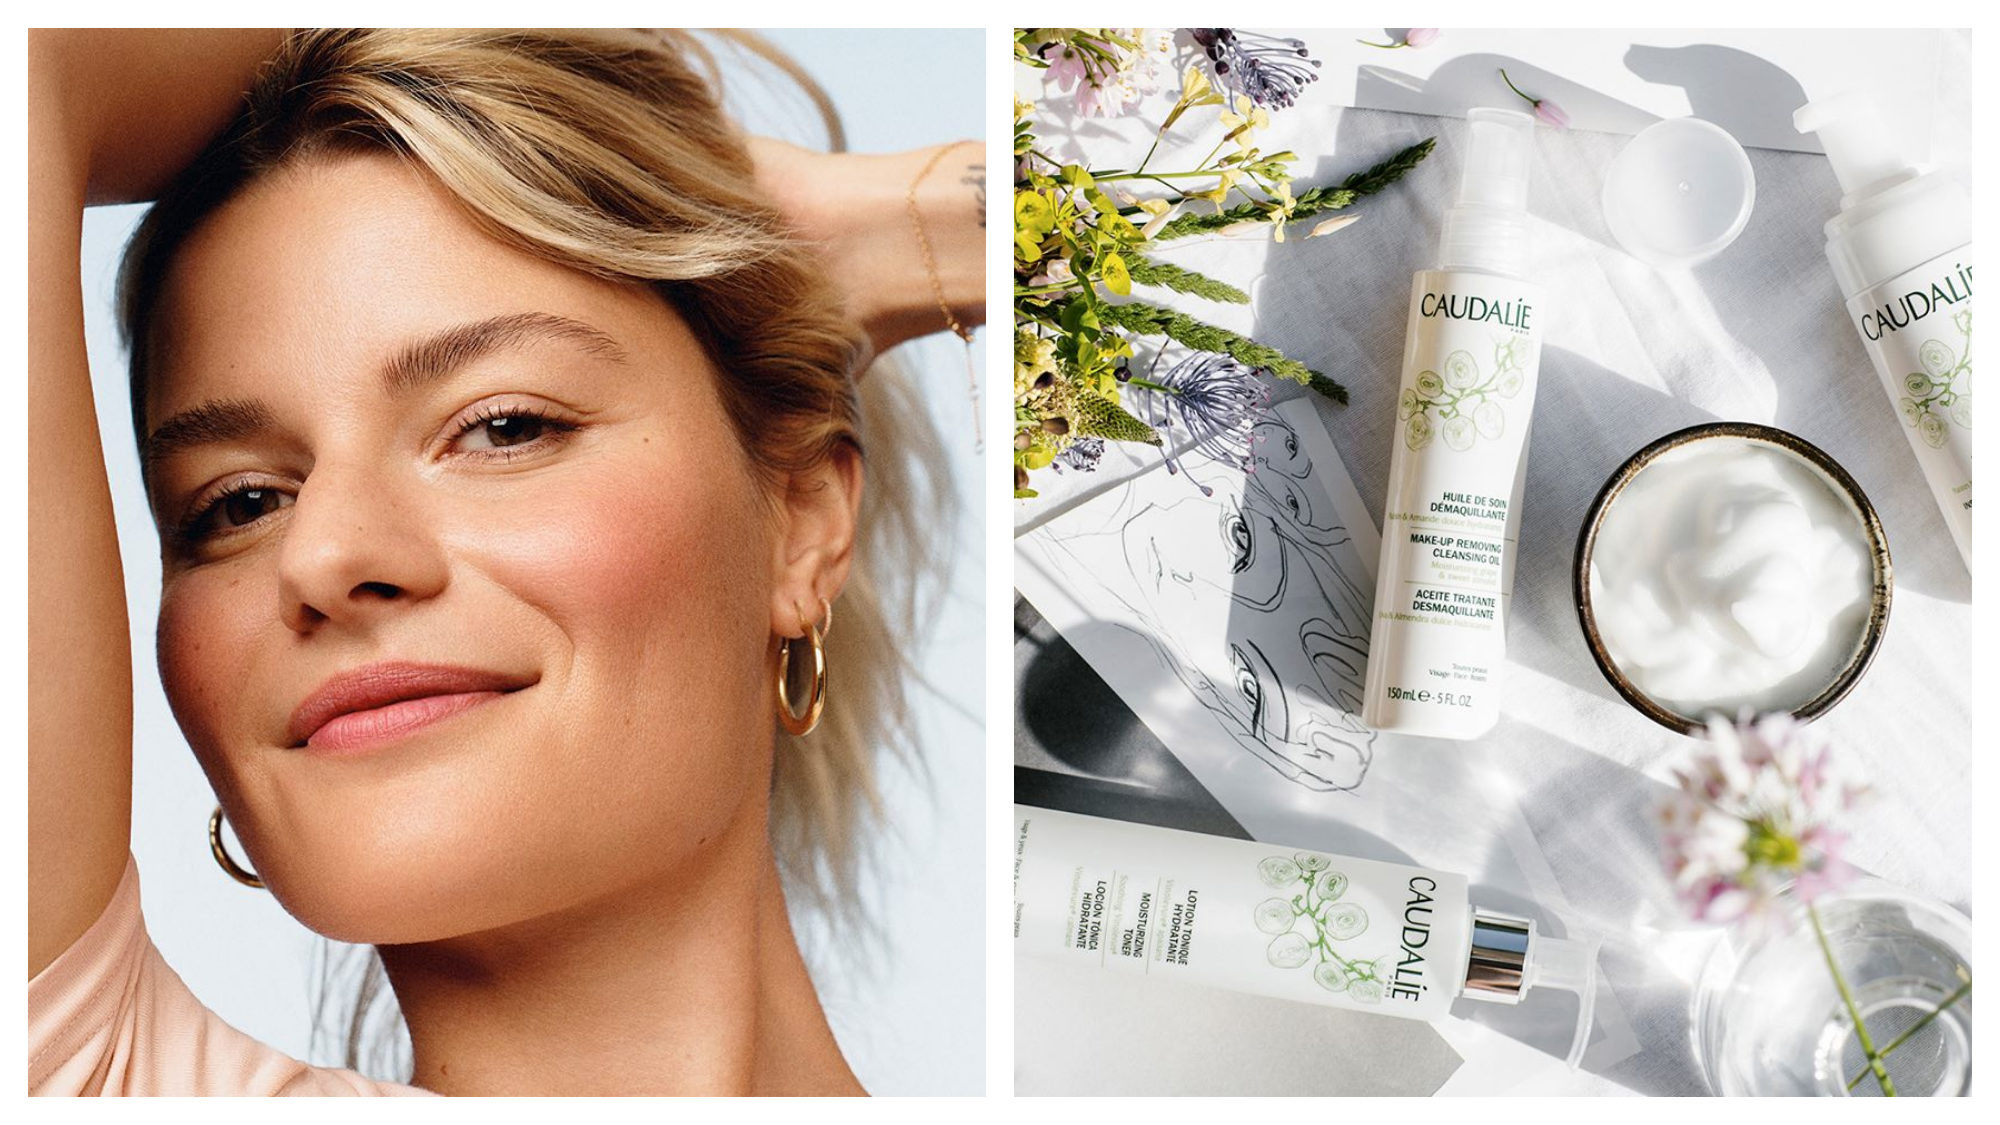 Girl with blonde hair, gold earrings and glowing skin. Caudalie products surrounded by flowers